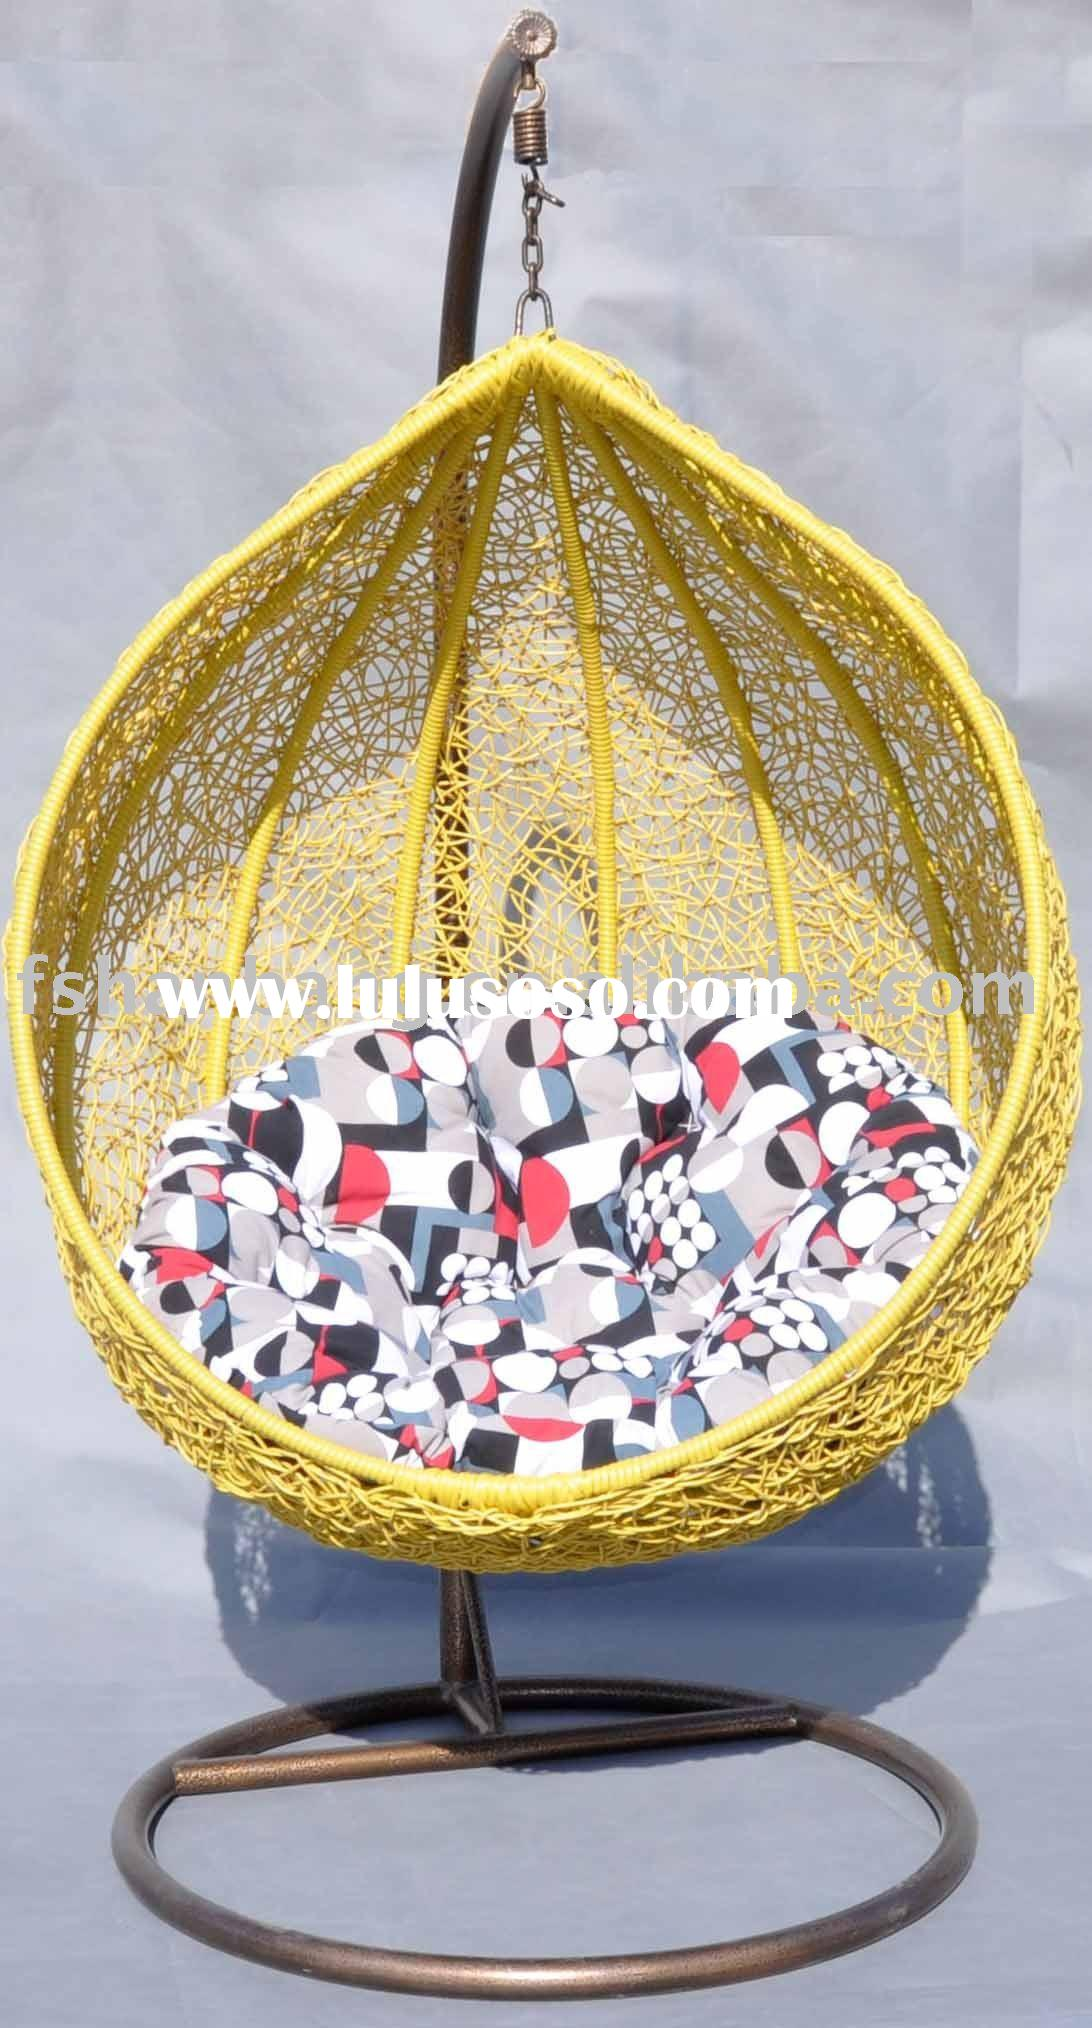 hanging chair swing, hanging chair swing Manufacturers in LuLuSoSo ...